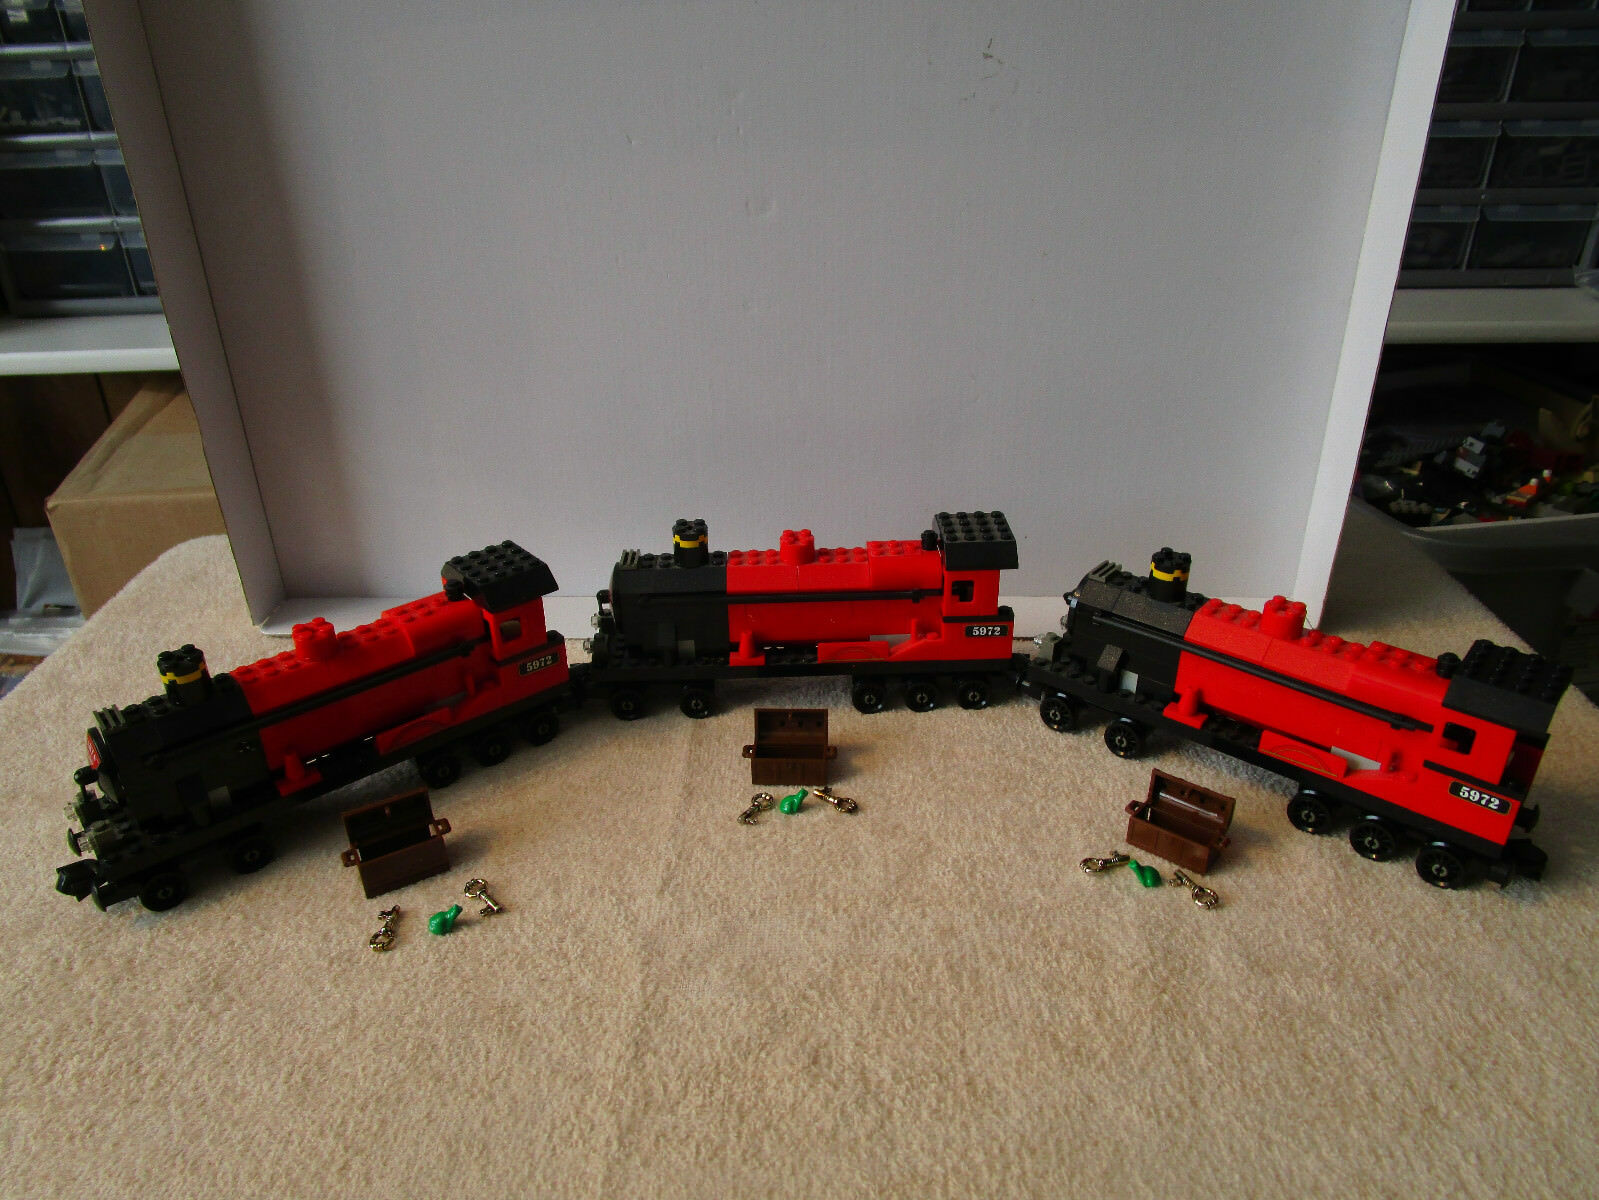 Lego Harry Potter (3) HOGWARTS EXPRESS EXPRESS EXPRESS TRAIN  ENGINE CAR'S ONLY  FROM SET 4708 ff12ea